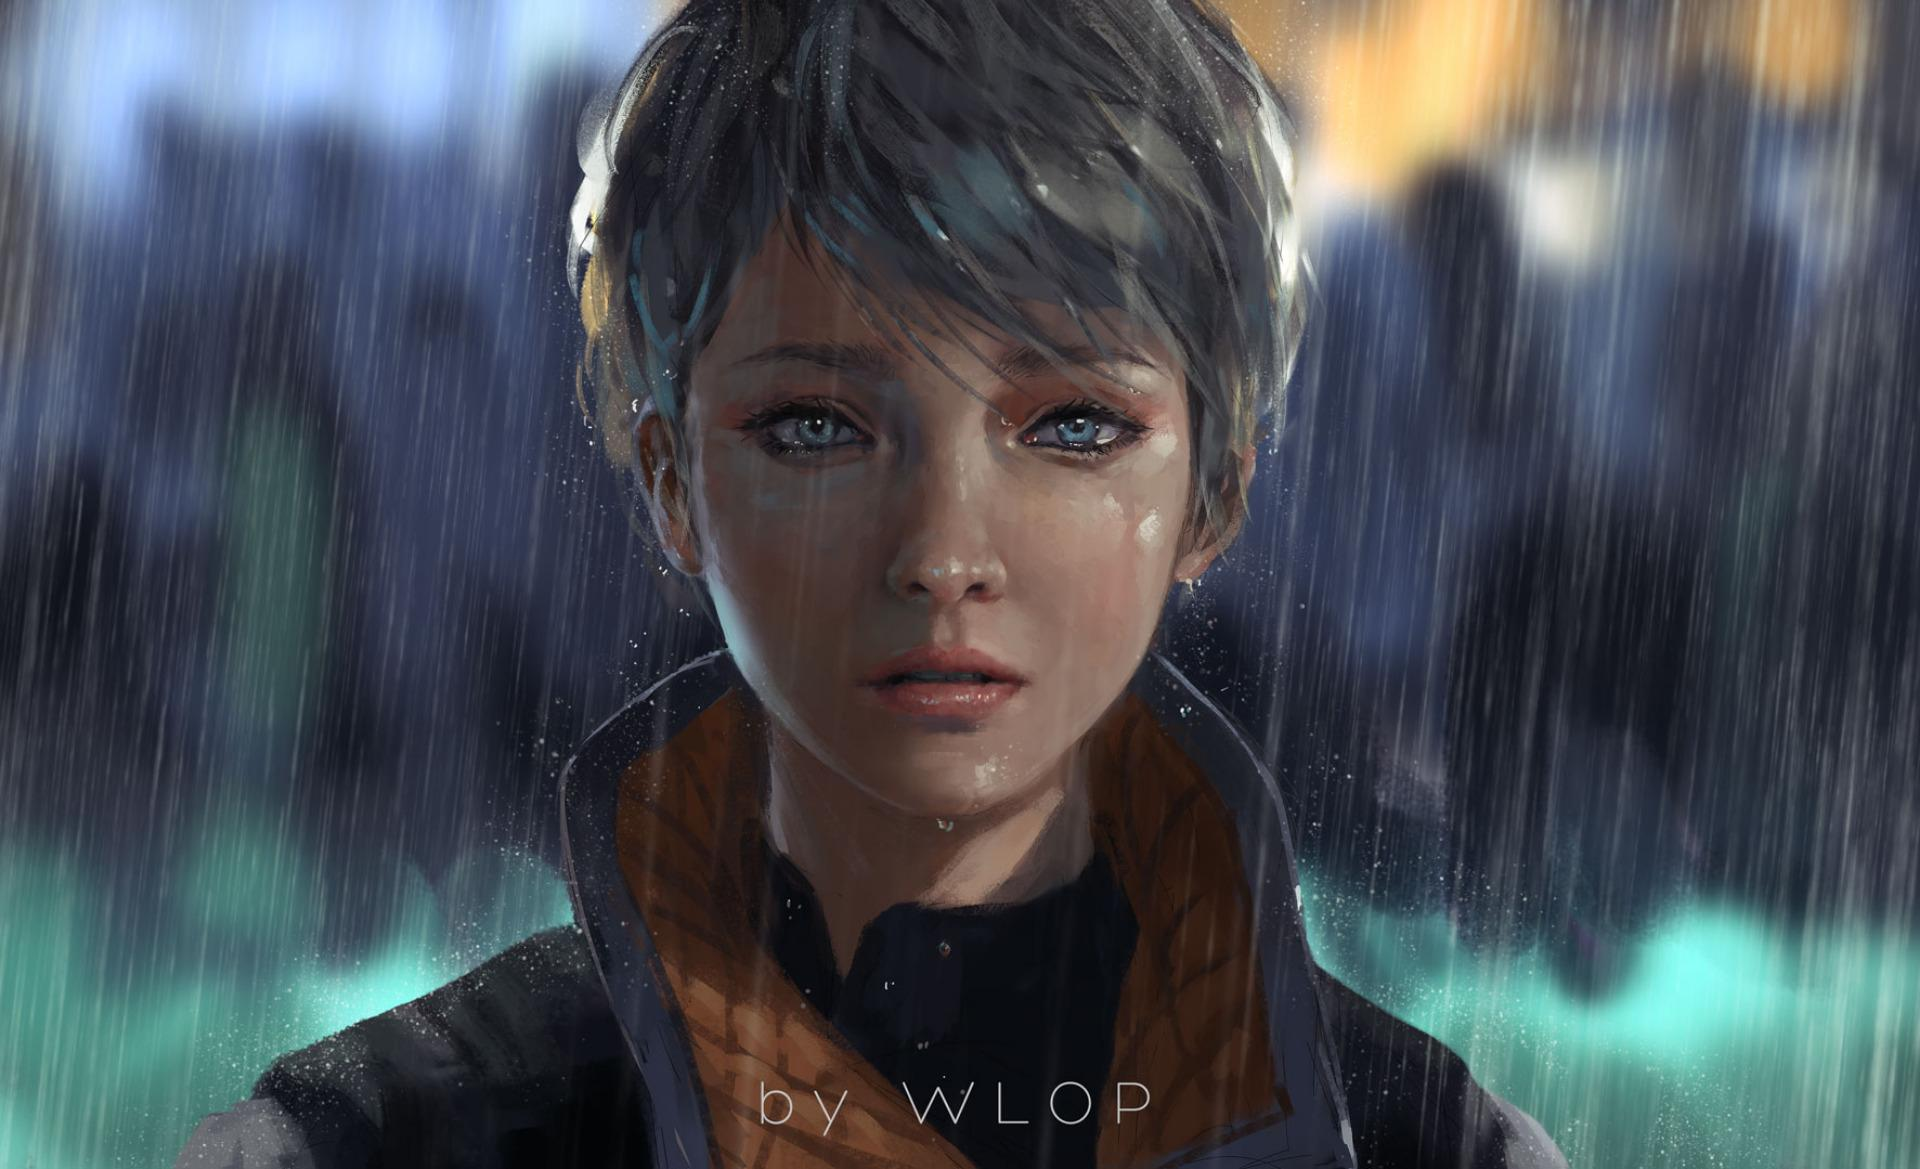 Kara Detroit Become Human Artwork, HD Games, 4k Wallpapers, Image